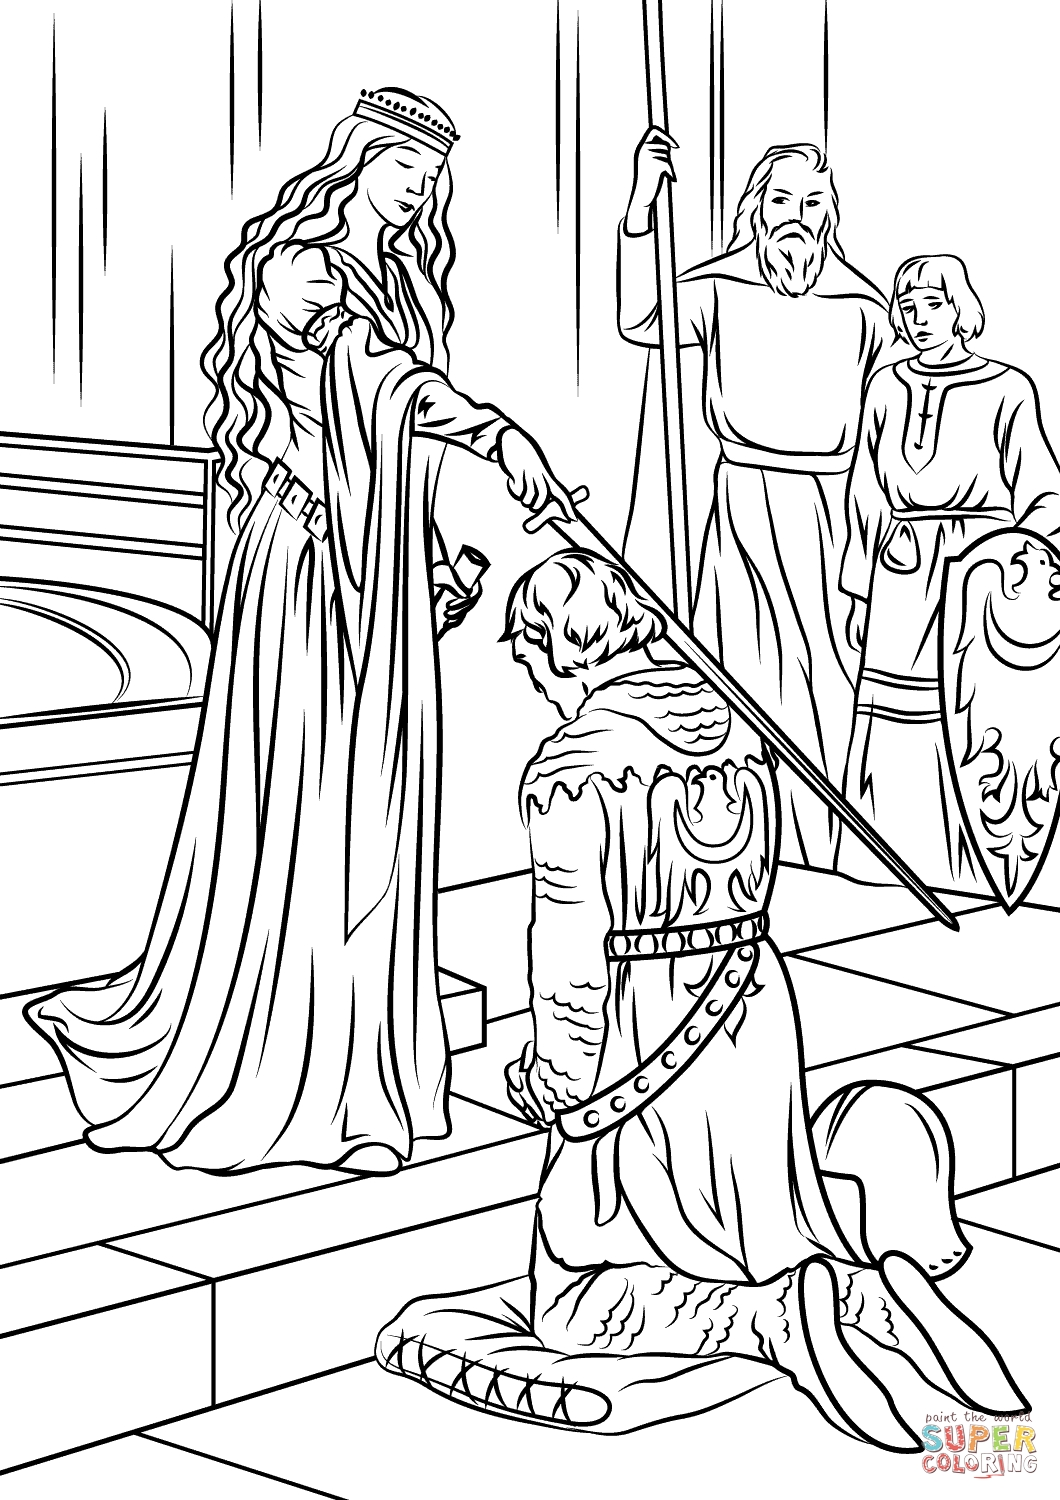 1060x1500 Fresh Coloring Pages Middle Ages Design Free Coloring Pages